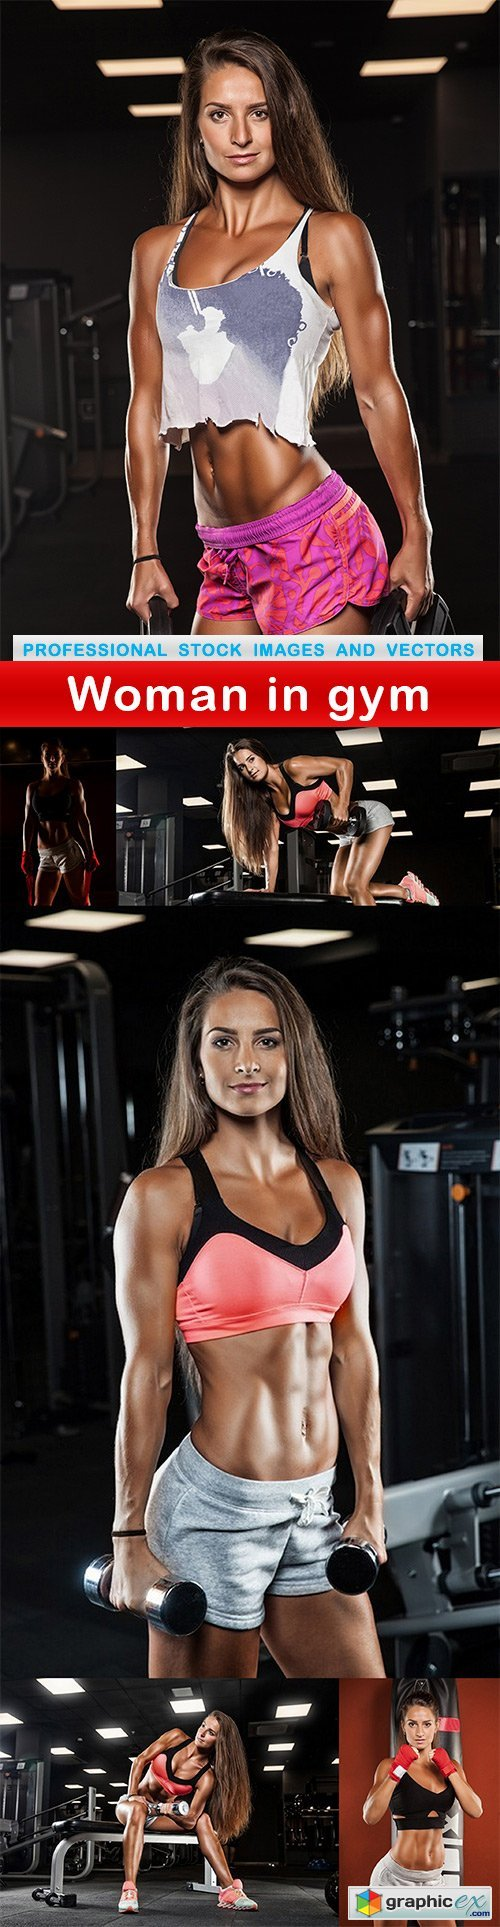 Woman in gym - 6 UHQ JPEG